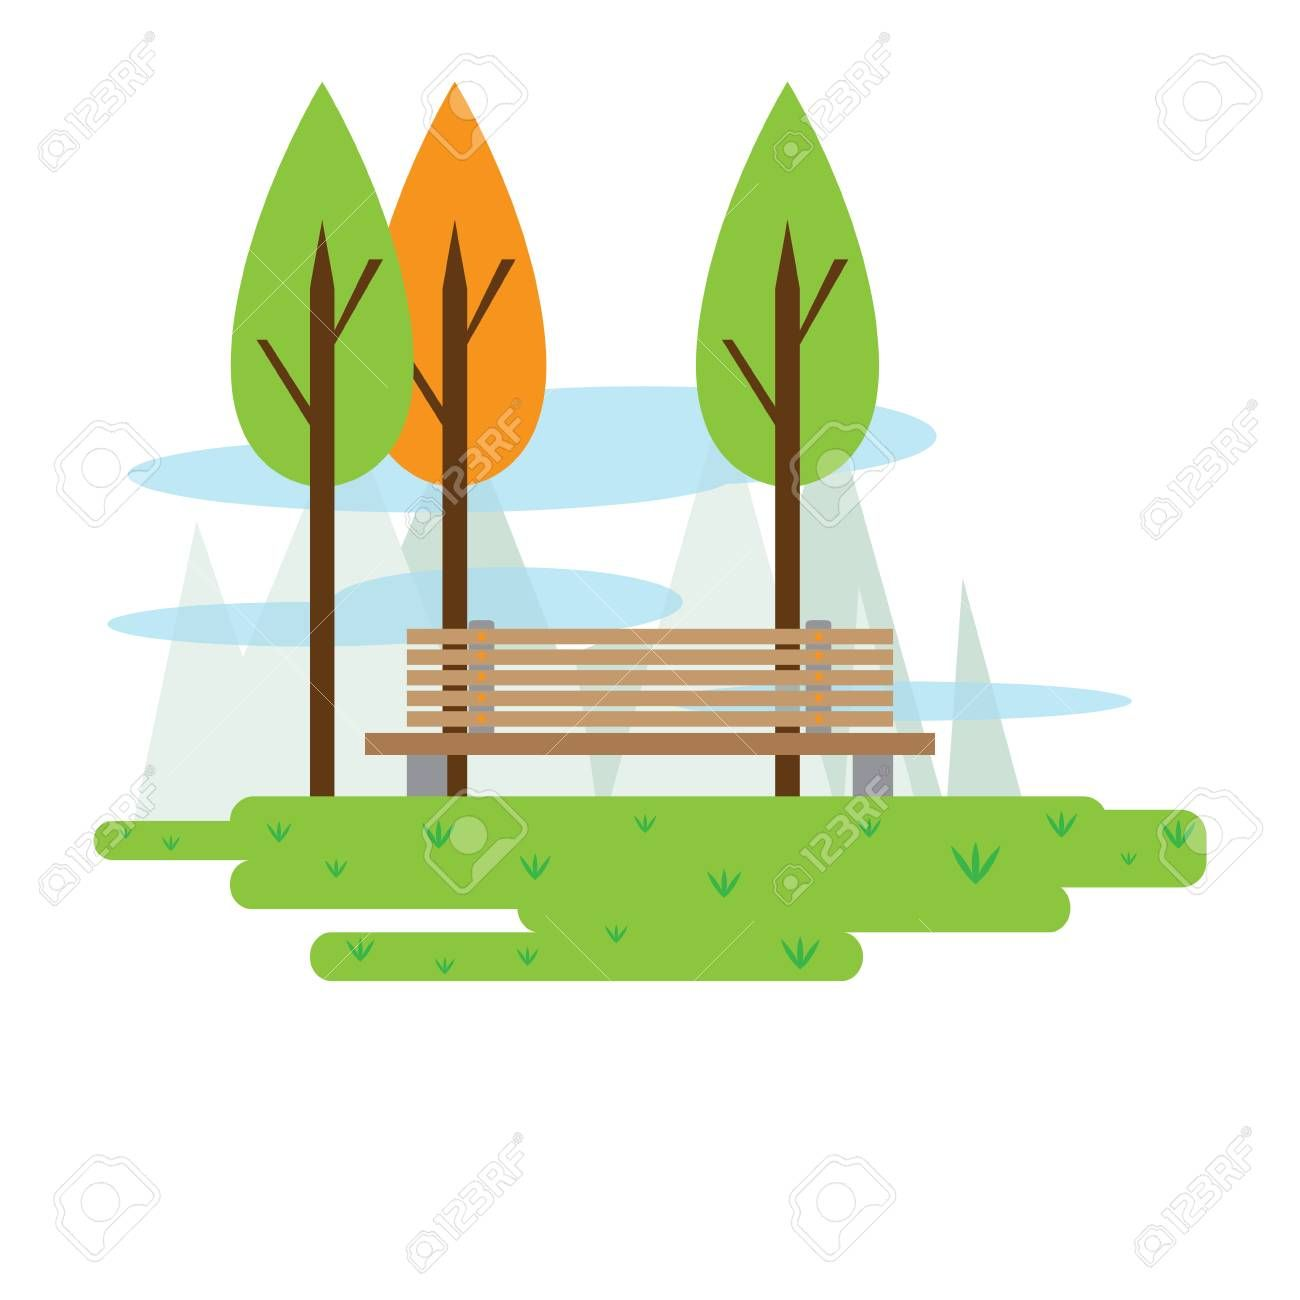 View of a public park with trees and a bench. Vector illustration design , #AD, #park, #trees, #View, #public, #illustration